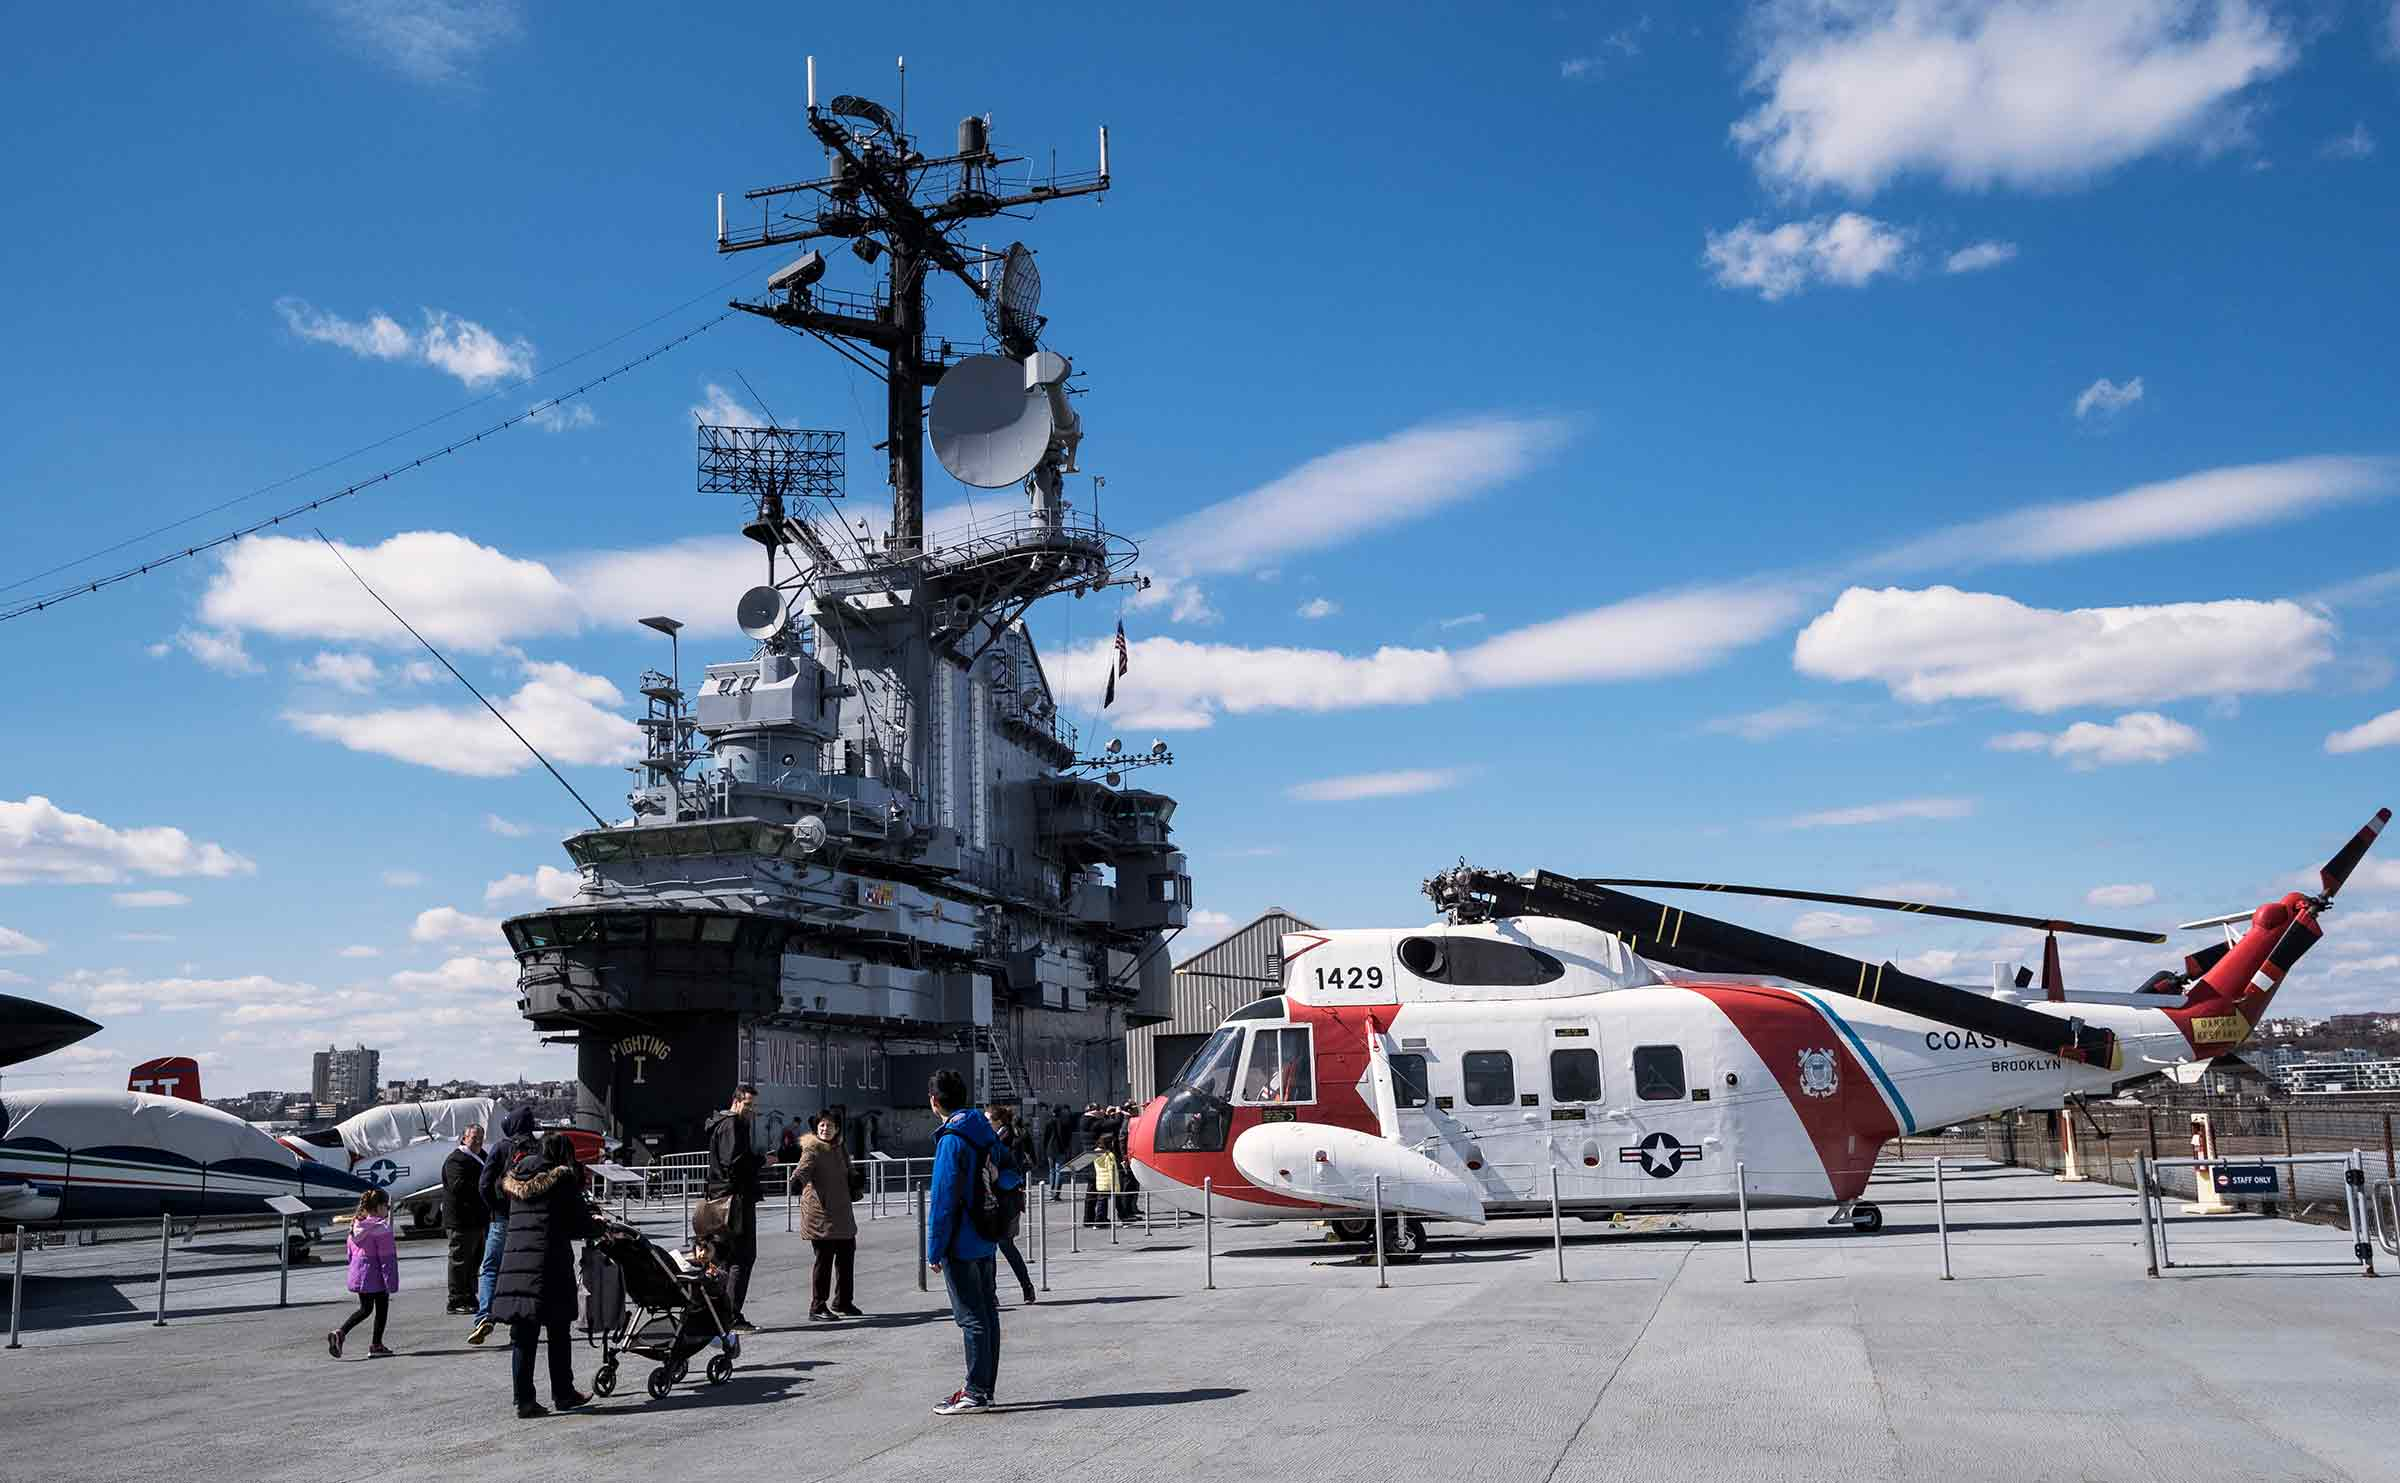 A red and white helicopter sits on the roof of the Intrepid